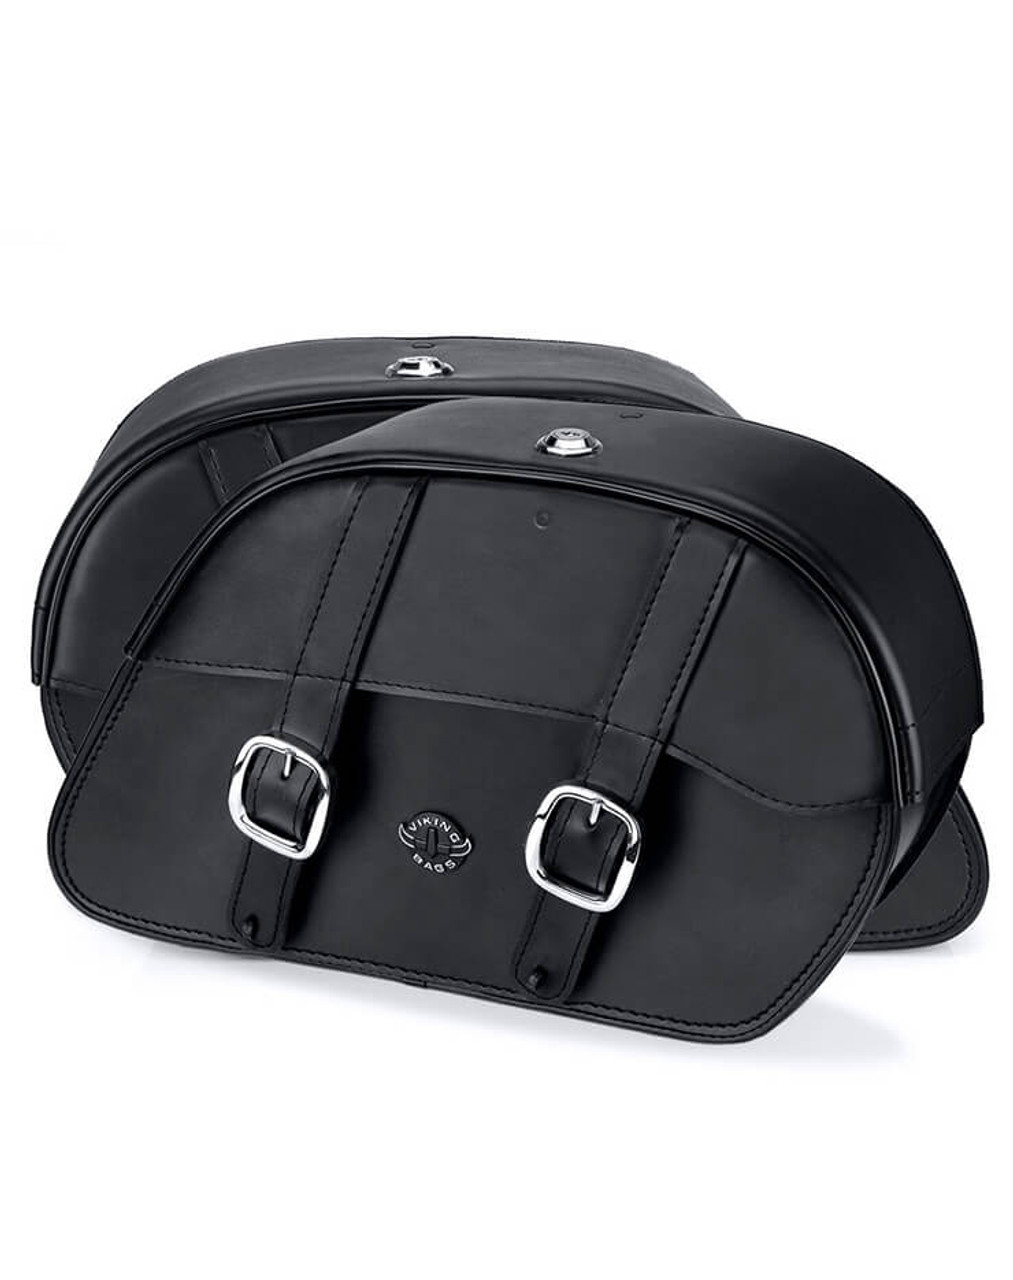 VikingBags Skarner Large Double Strap Triumph Thunderbird Leather Motorcycle Saddlebags Both Bags View